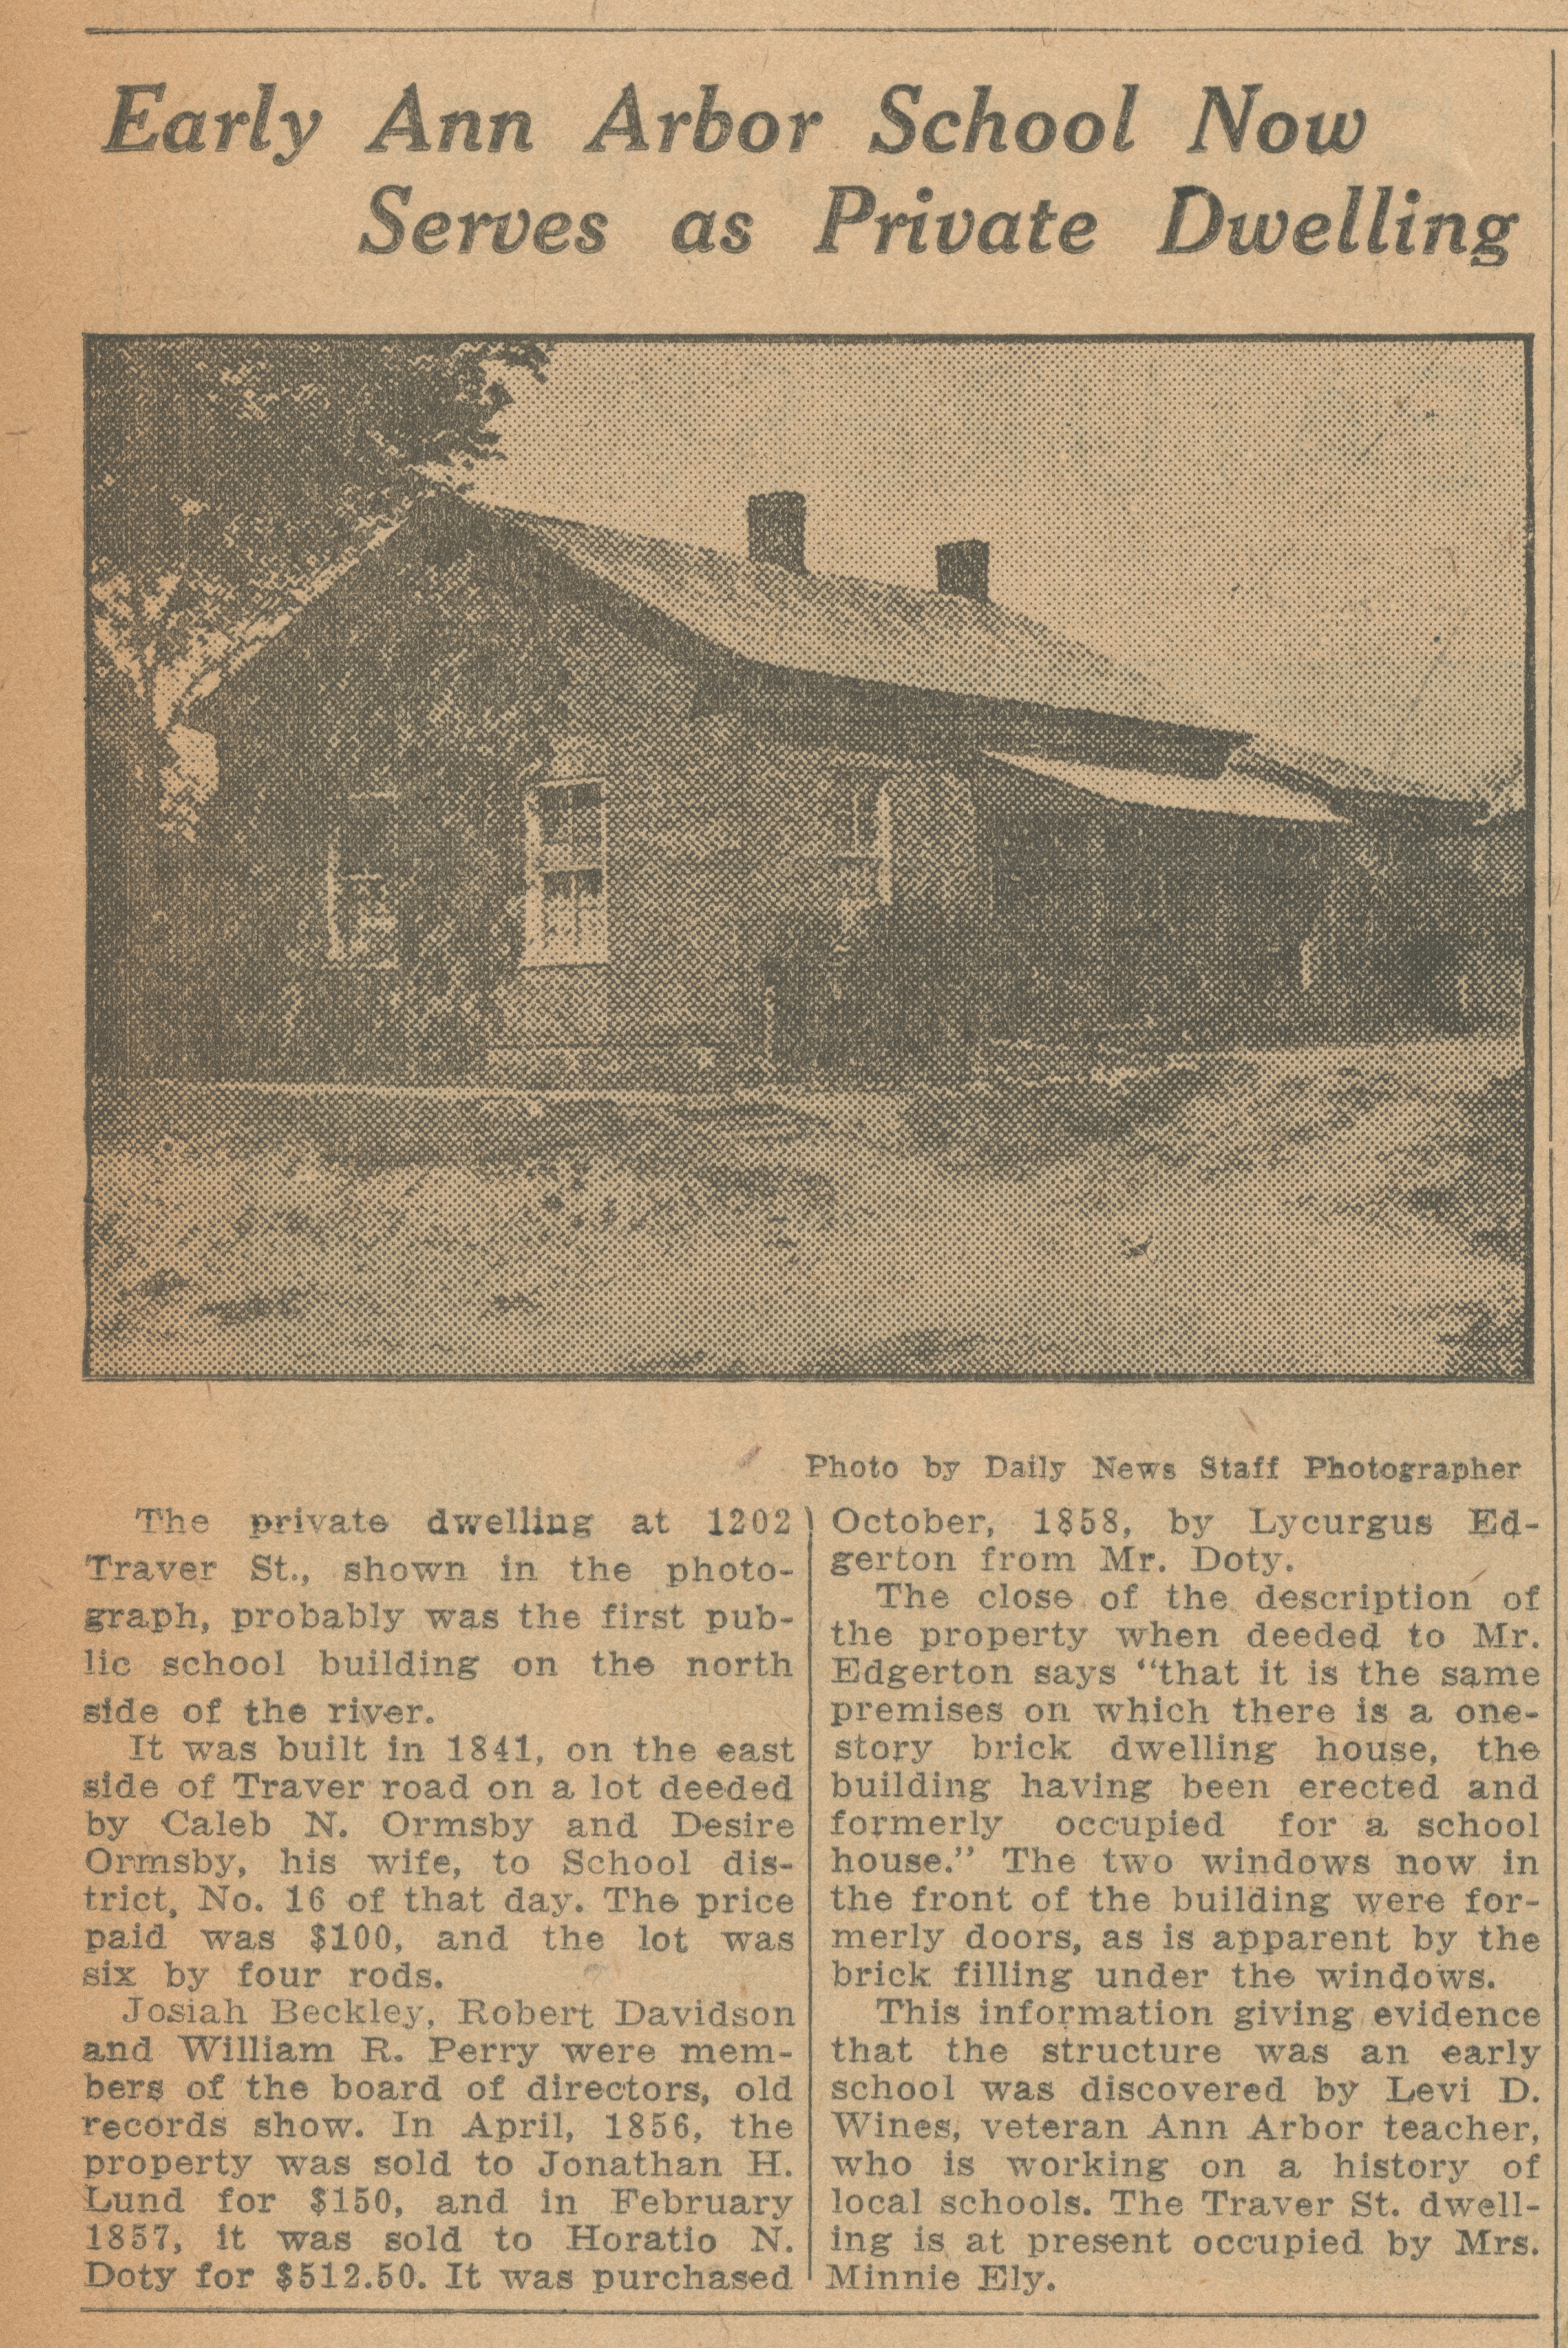 Early Ann Arbor School Now Serves as Private Dwelling image